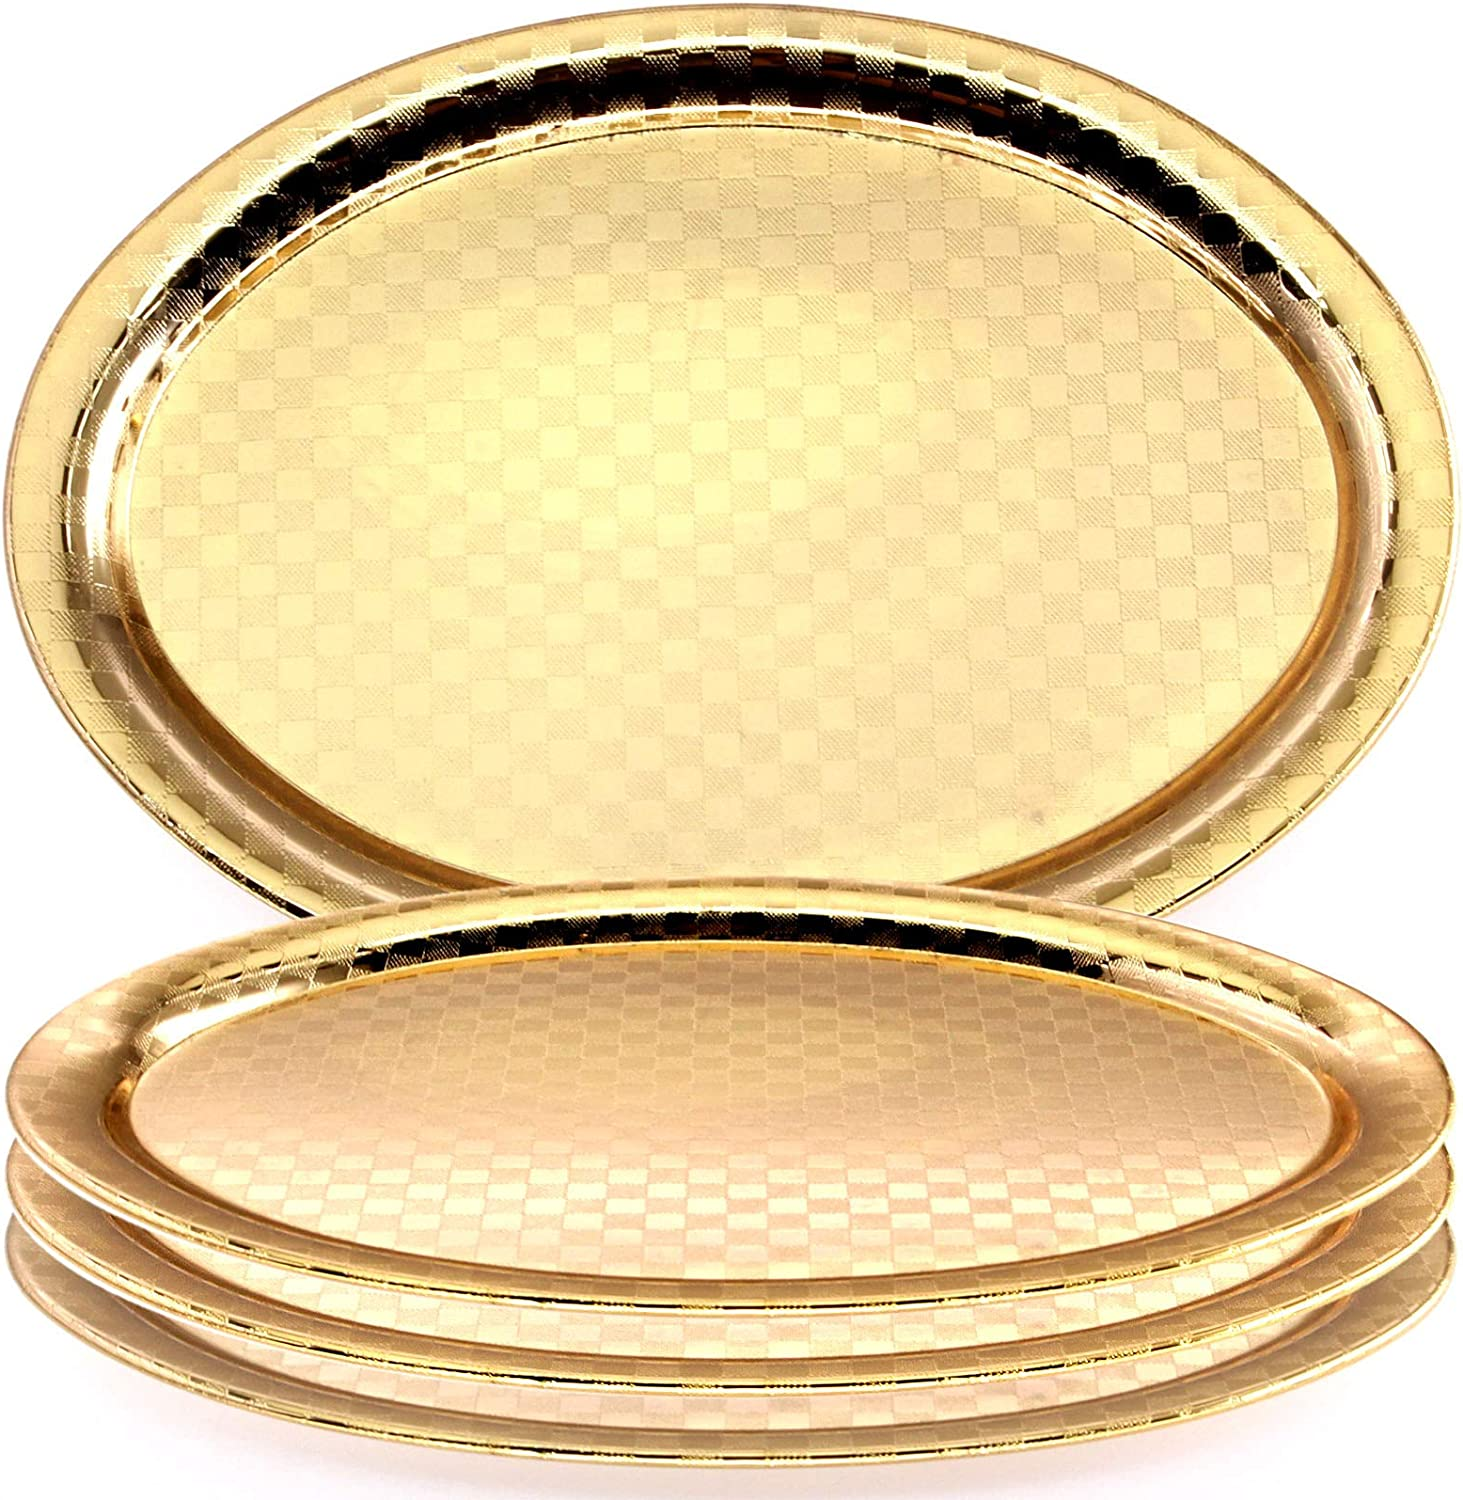 Maro Megastore (Pack of 4) 10.4 Inch x 7.6 Inch Oval Iron Gold Plated Serving Tray Bricks Square Edge Decorative Party Birthday Wedding Dessert Buffet Wine Candle Decor Platter Plate Dish CC-696